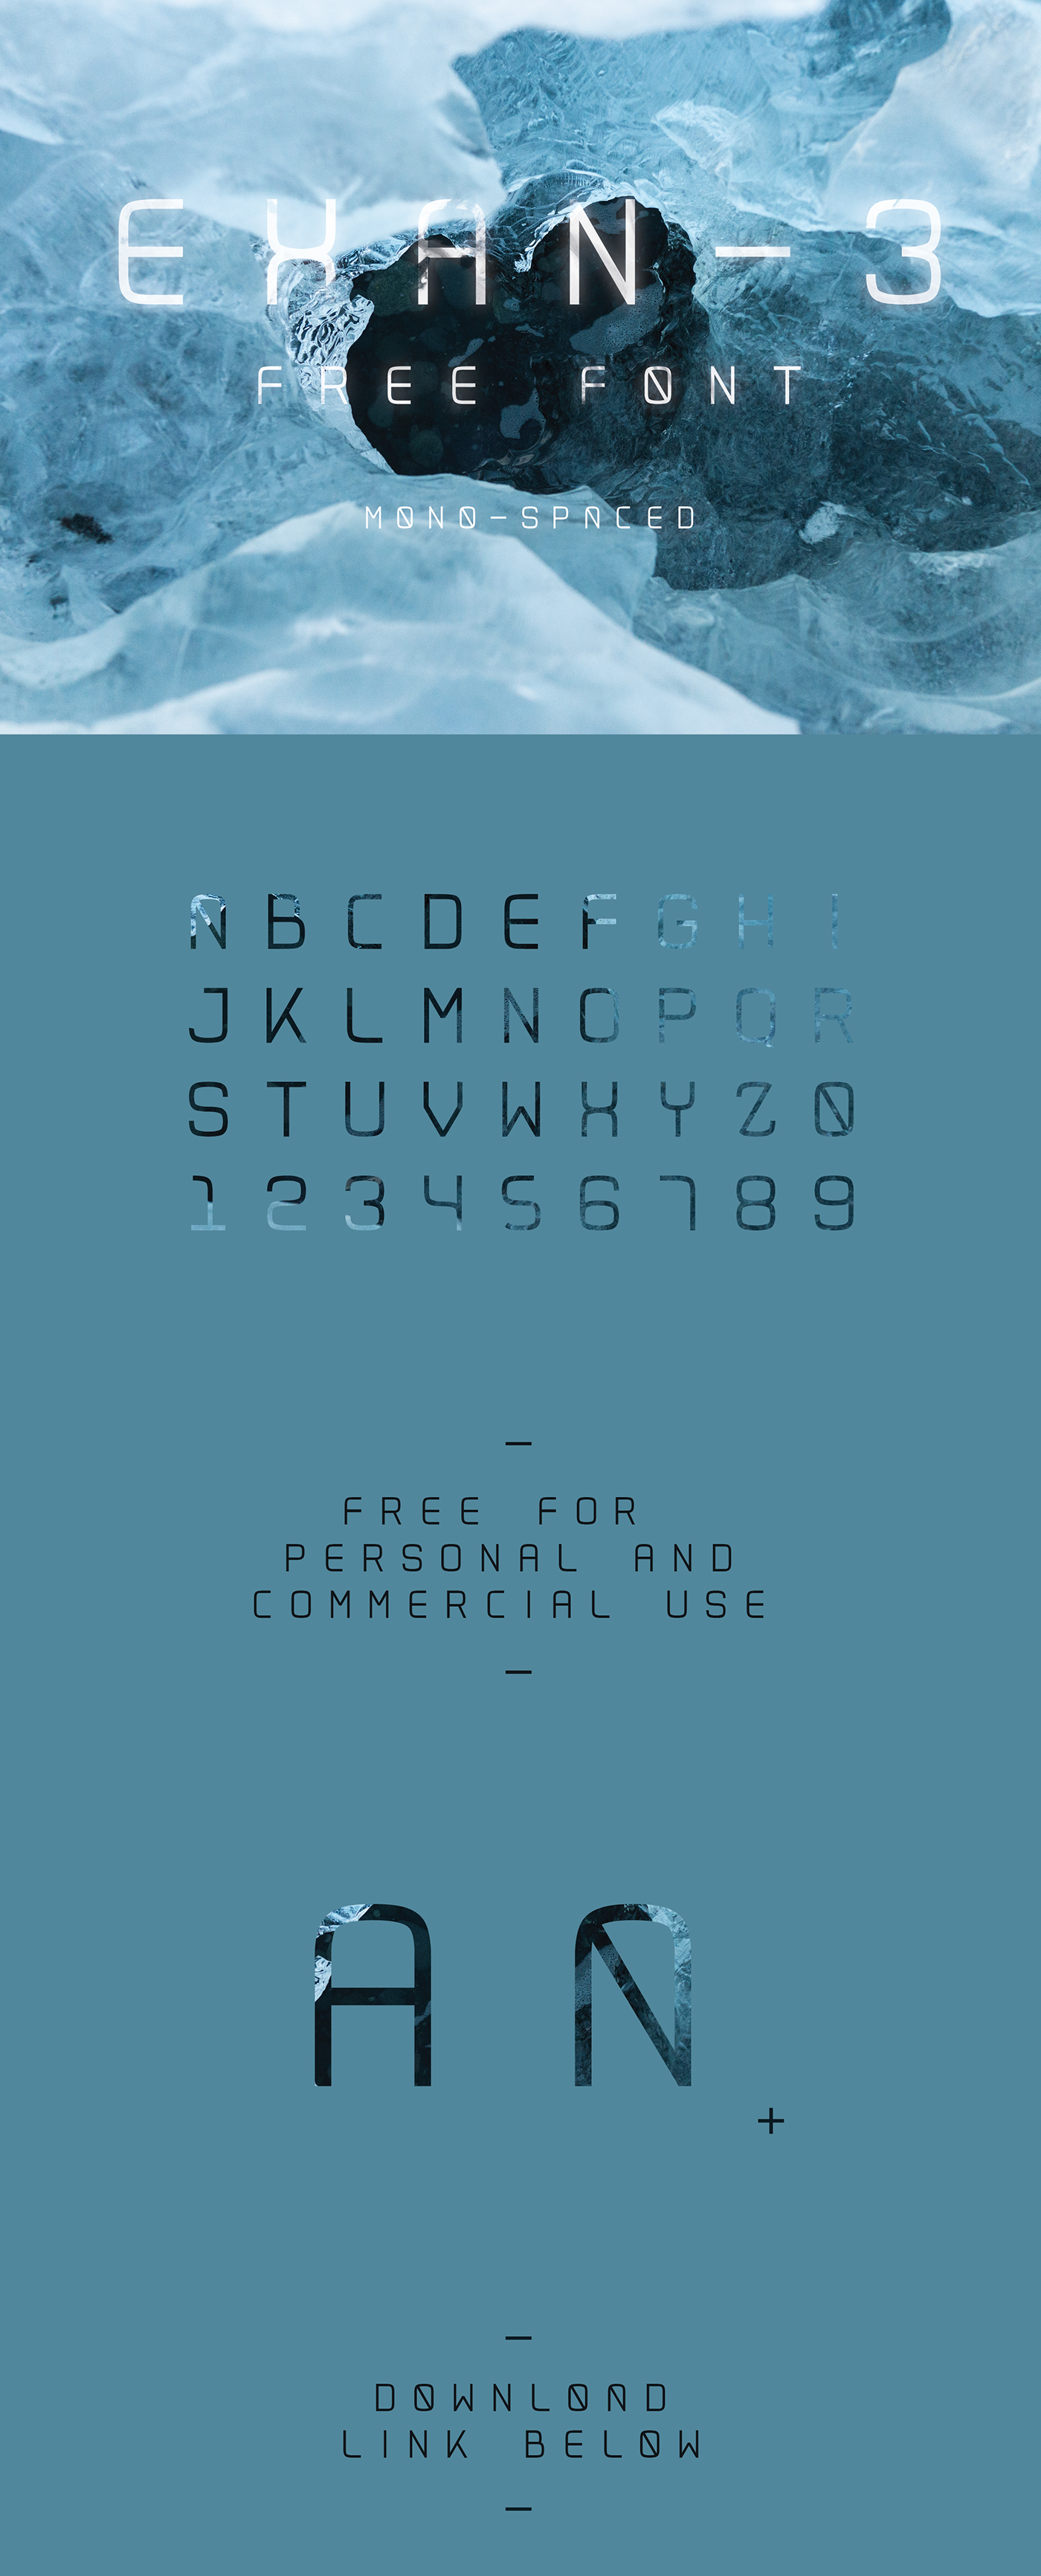 free font freefont free download download Typeface new featured type commercial use sans text exan display font Space